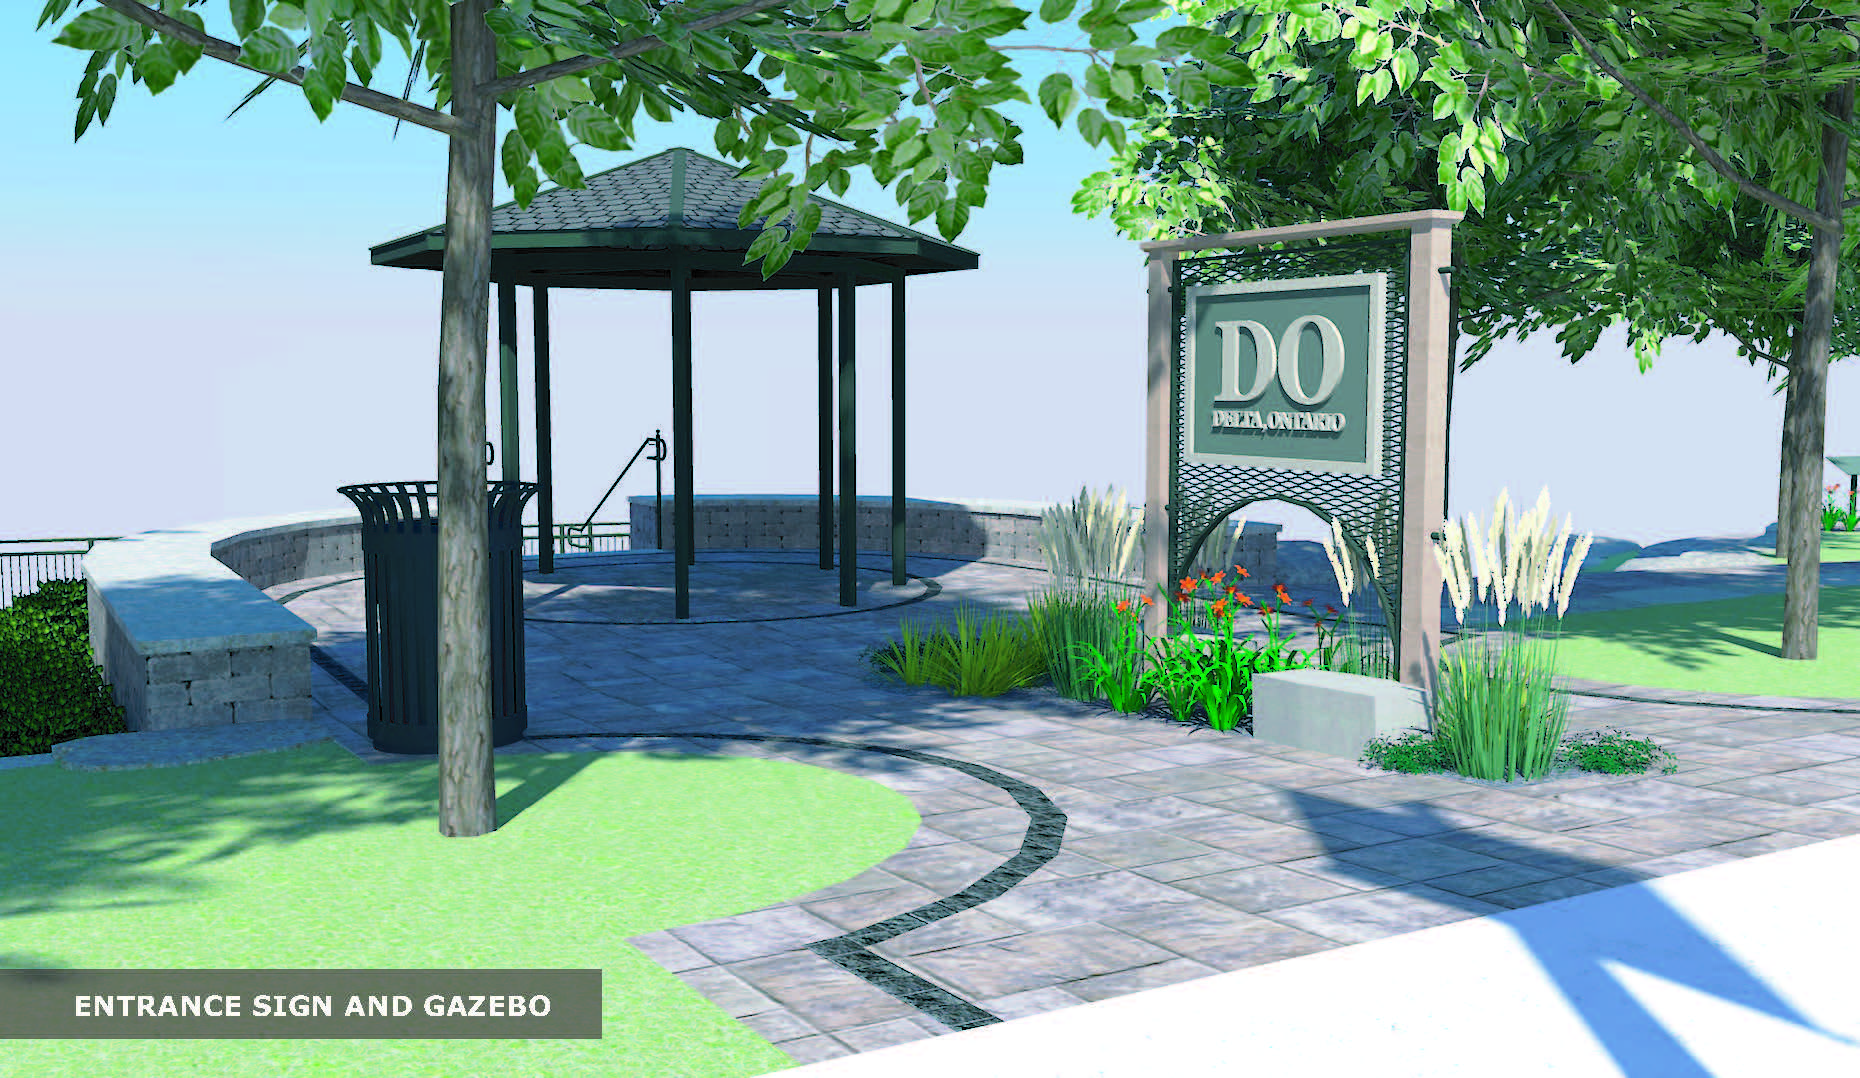 Gazebo_Park Concept_Community Park_Riverview Design Solutions_Landscaping.jpg